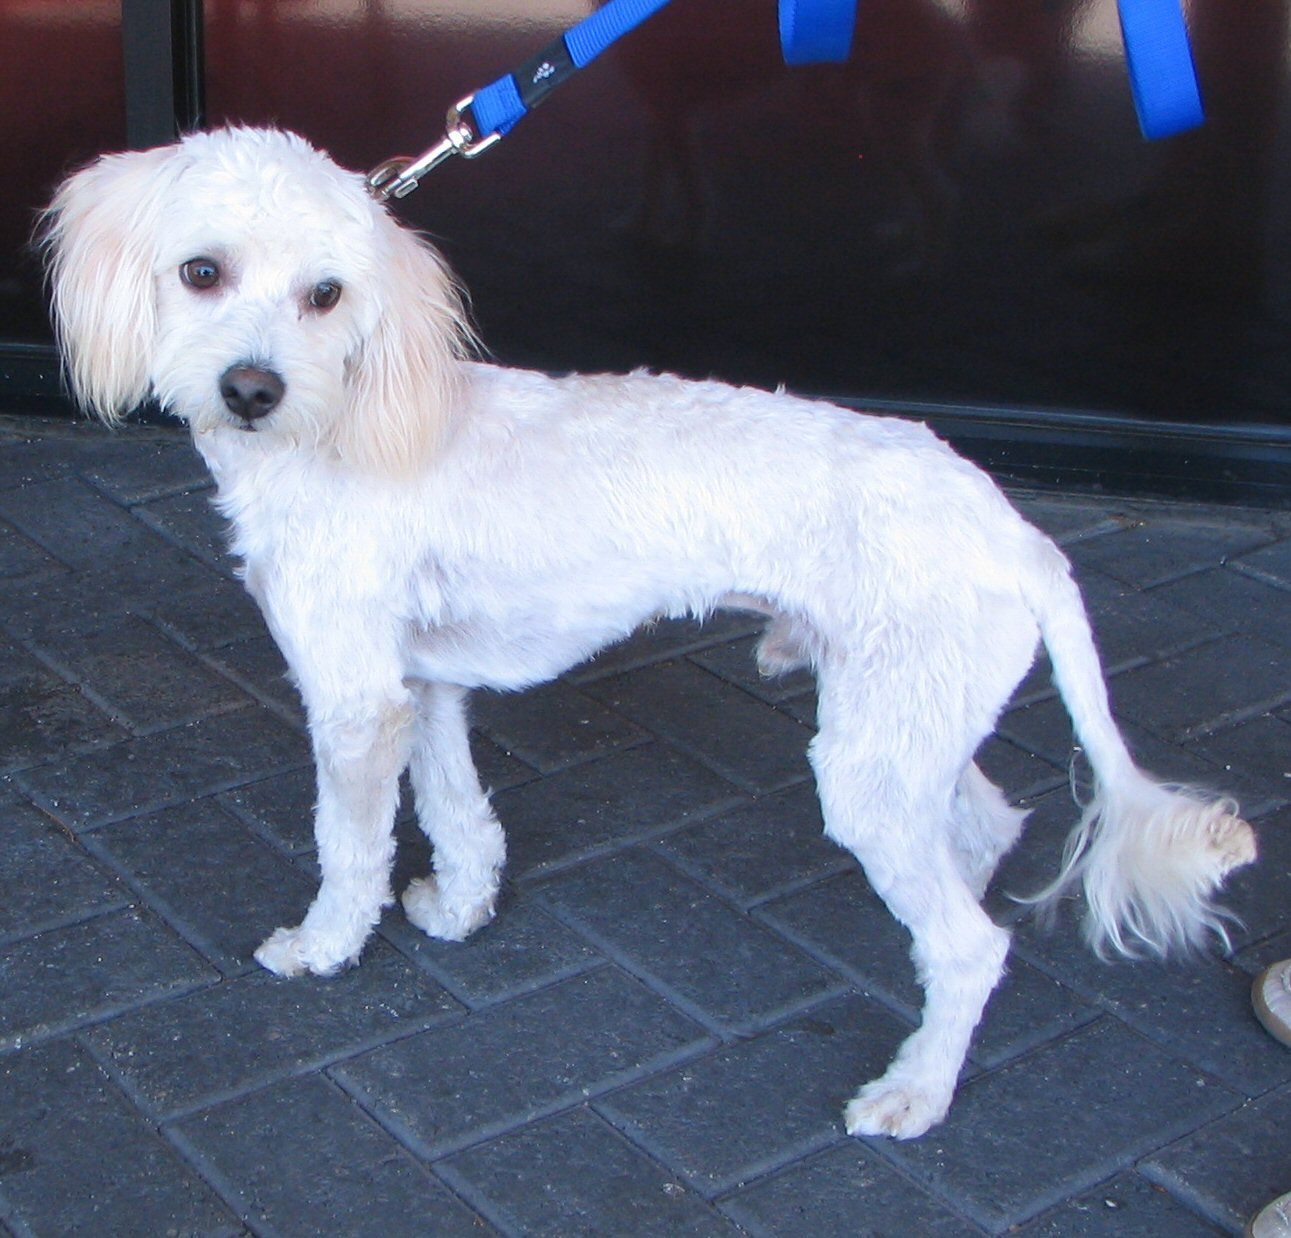 Chihuahua rescue truckee meadows saved with forever homes marley is a maltese poodle mix marley was a mess when he got here and his hair was so matted that we took him to the groomers and got him a winobraniefo Image collections